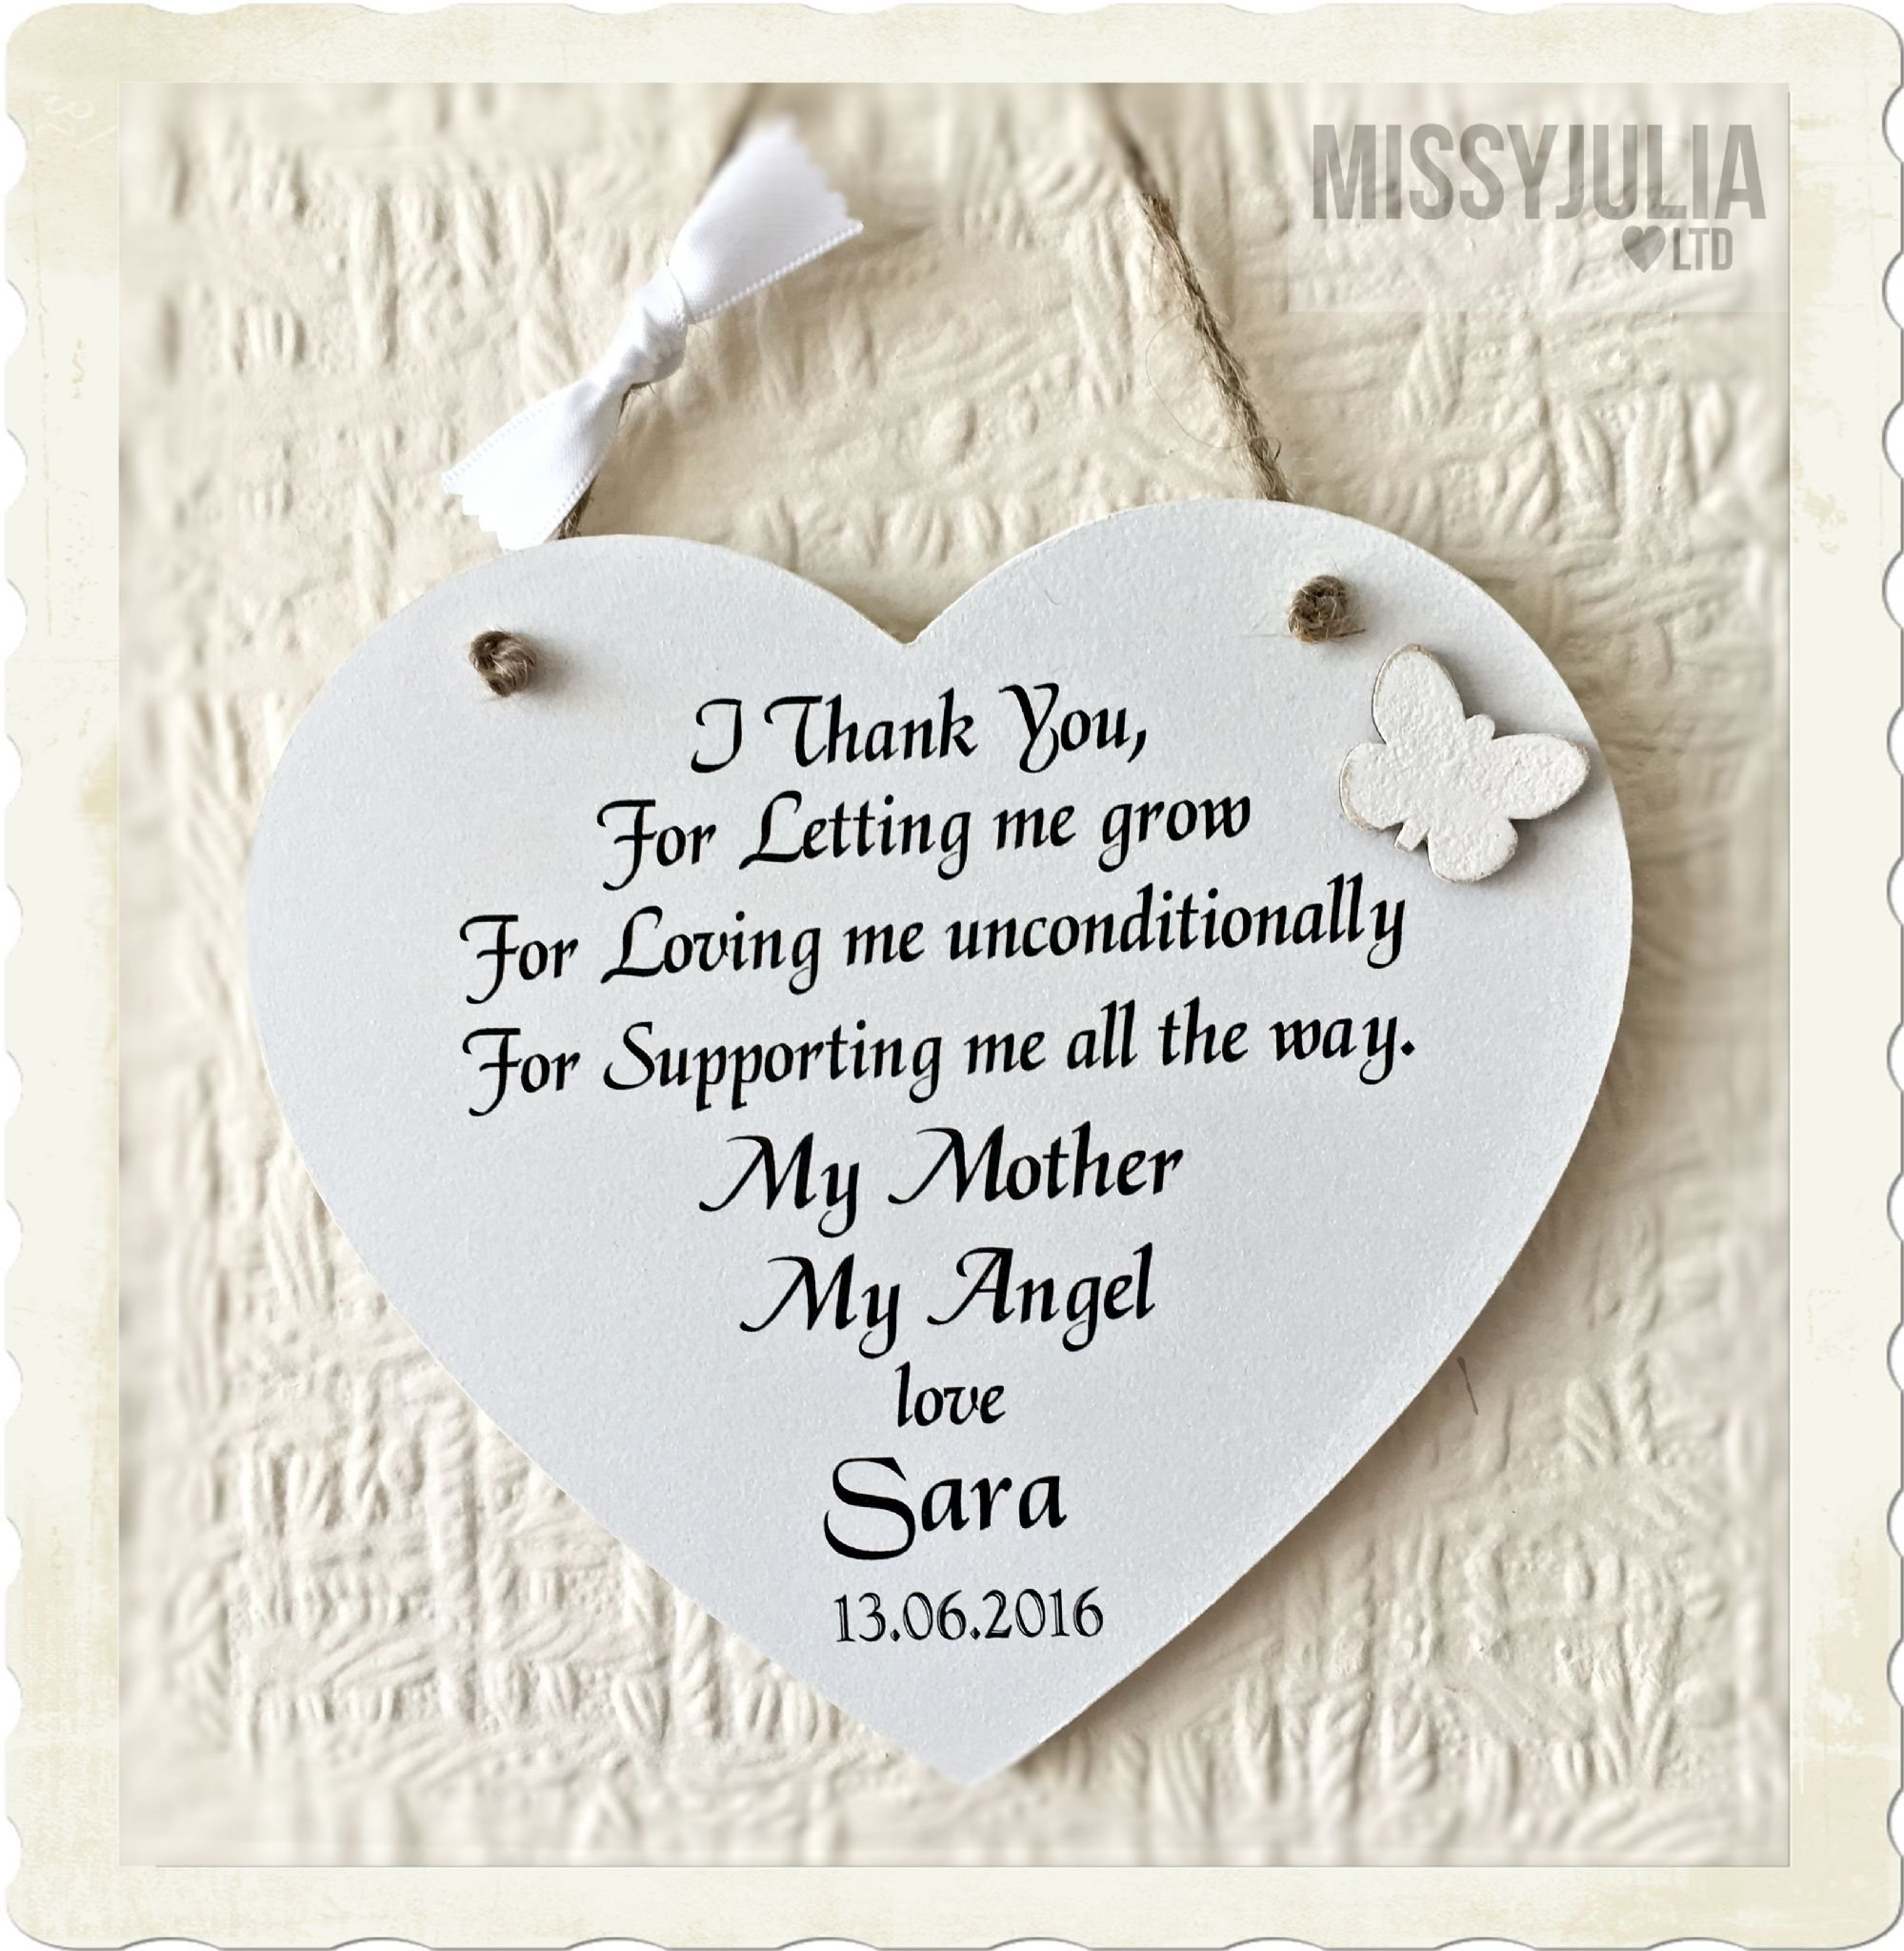 10 Lovable Mother Of The Groom Gift Ideas mother of the bride mum personalised heart wooden wedding rustic 2020